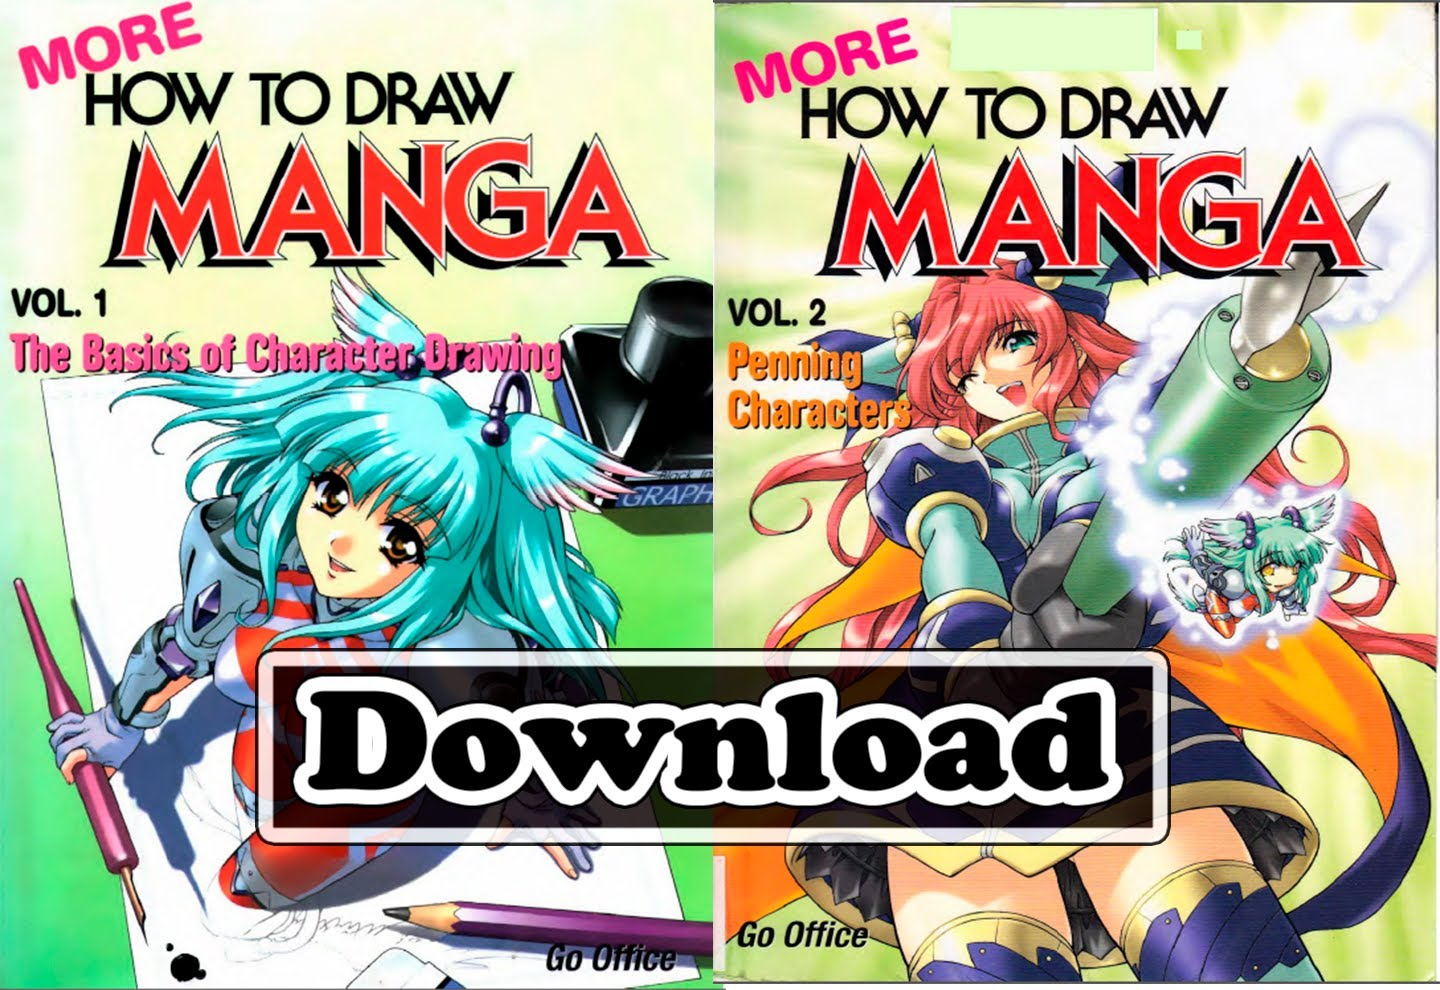 Clipart manga pdf picture royalty free library Download - More How to Draw Manga Series (PDF) - YouTube picture royalty free library